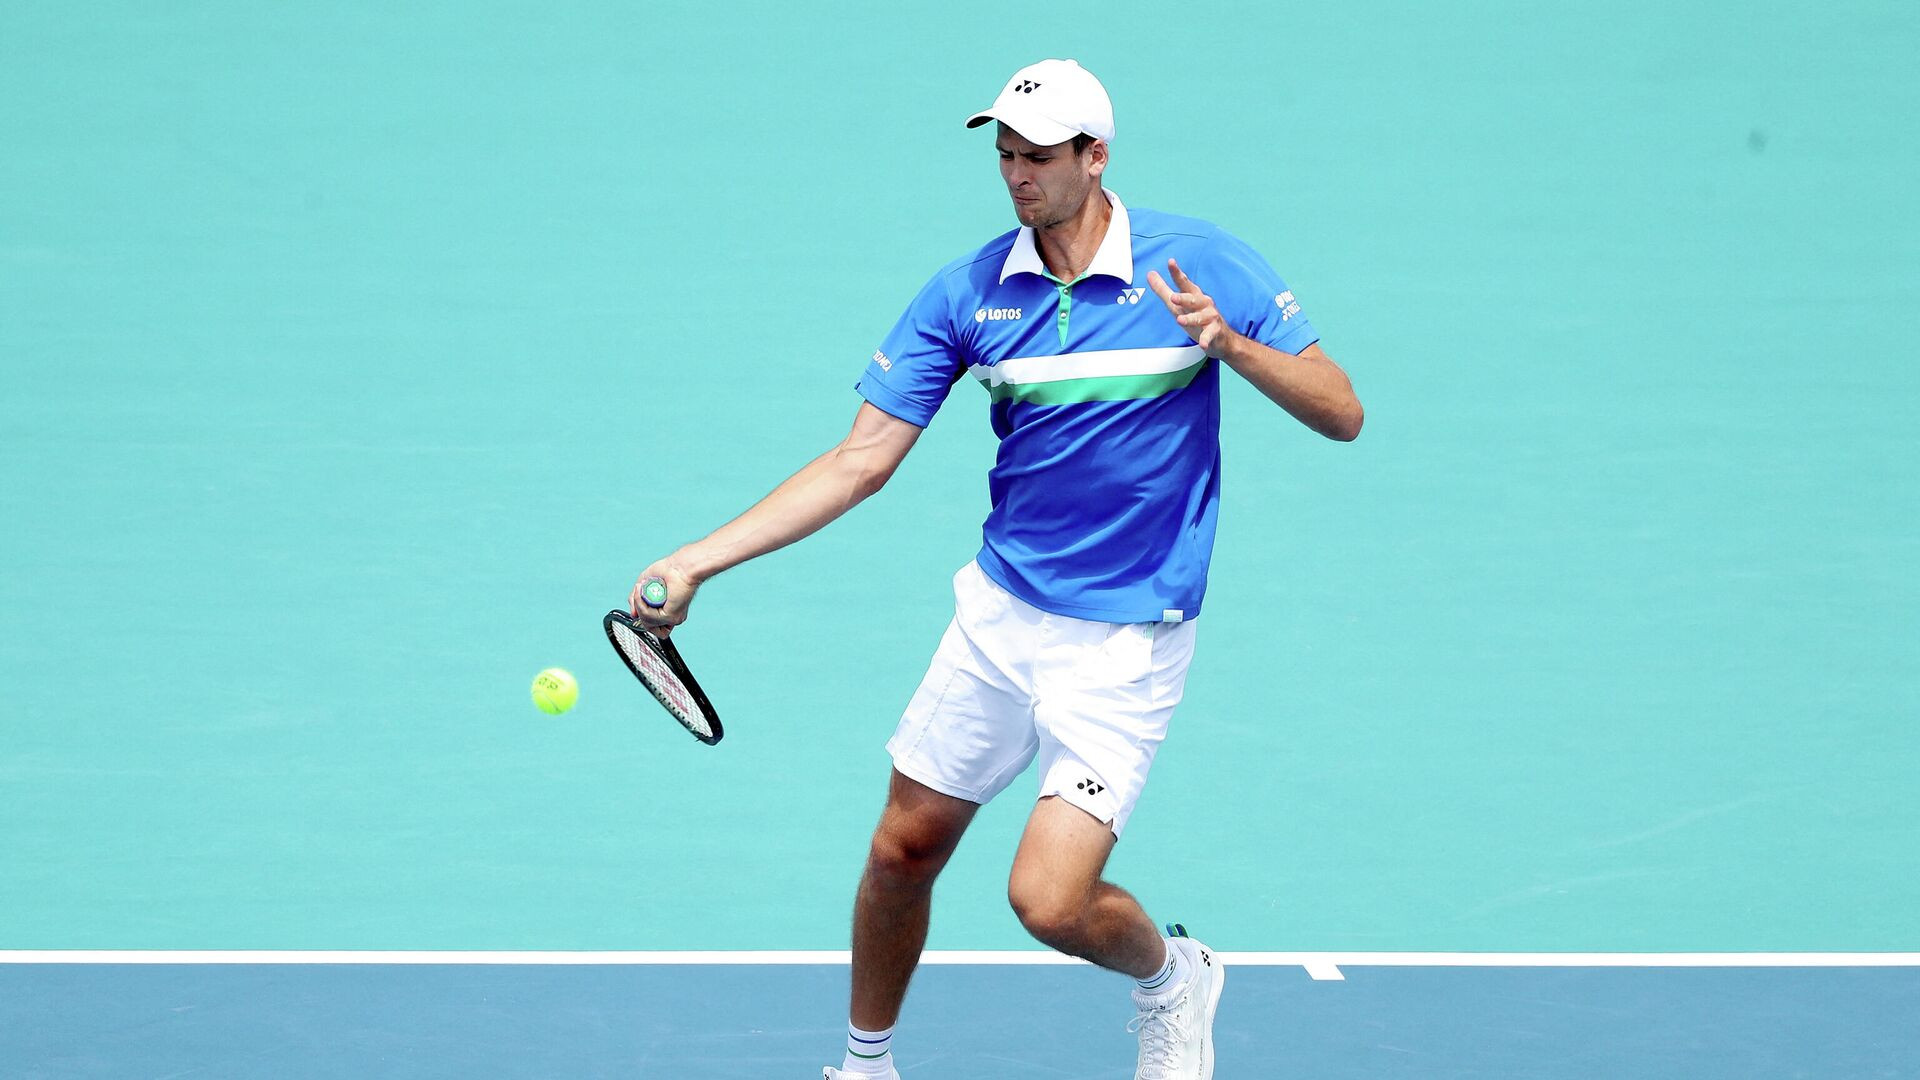 MIAMI GARDENS, FLORIDA - APRIL 04: Hubert Hurkacz of Poland returns a shot to Jannik Sinner of Italy during the final of the Miami Open at Hard Rock Stadium on April 04, 2021 in Miami Gardens, Florida.   Matthew Stockman/Getty Images/AFP (Photo by MATTHEW STOCKMAN / GETTY IMAGES NORTH AMERICA / Getty Images via AFP) - РИА Новости, 1920, 04.04.2021